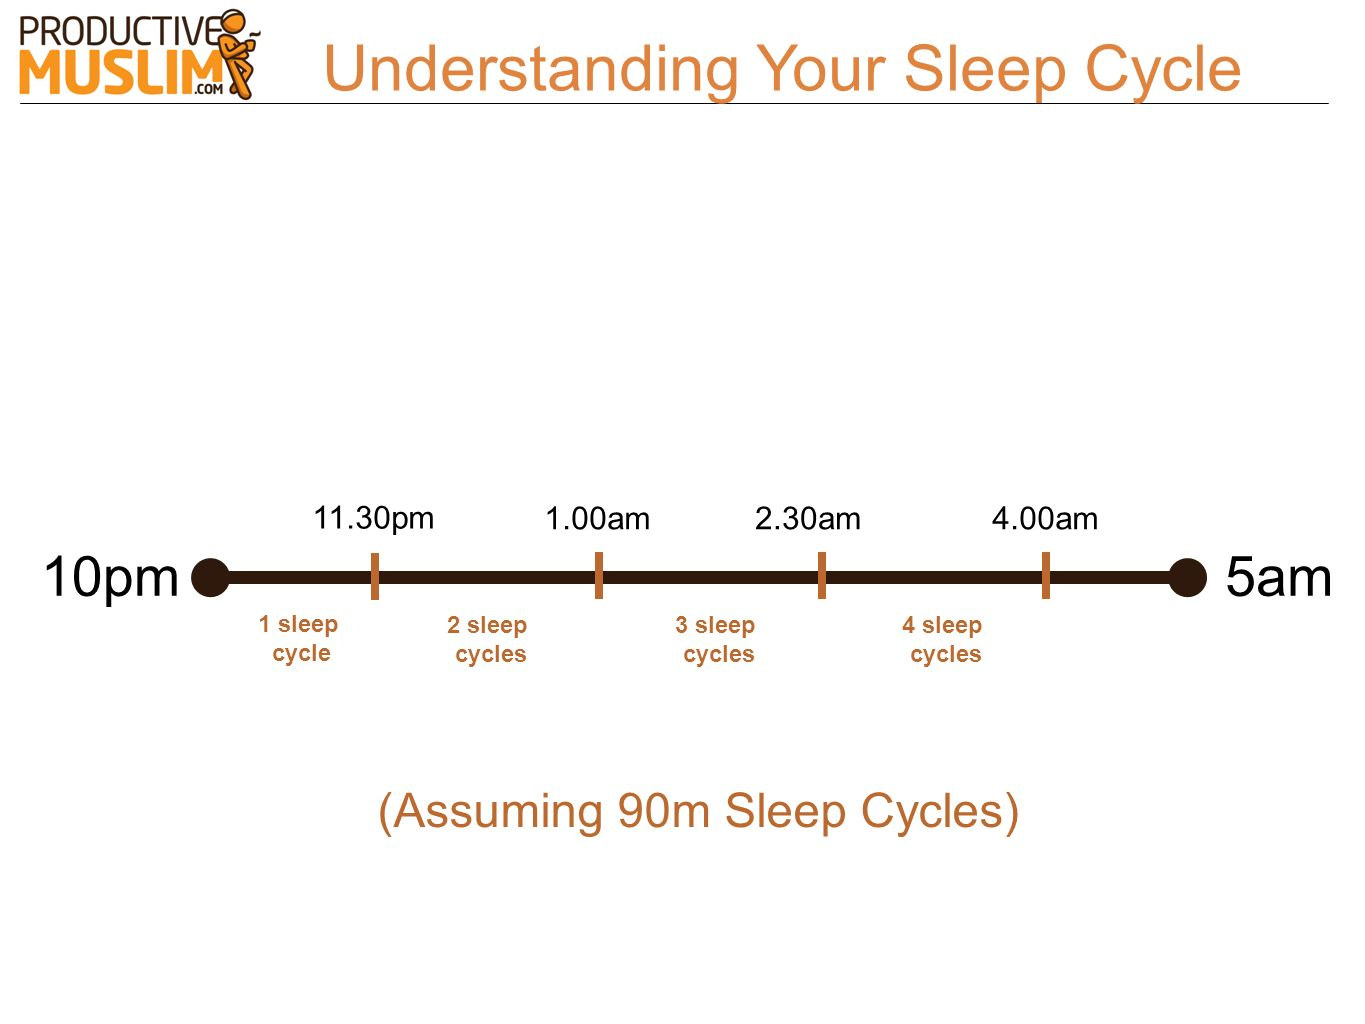 Understanding Your Sleep Cycle